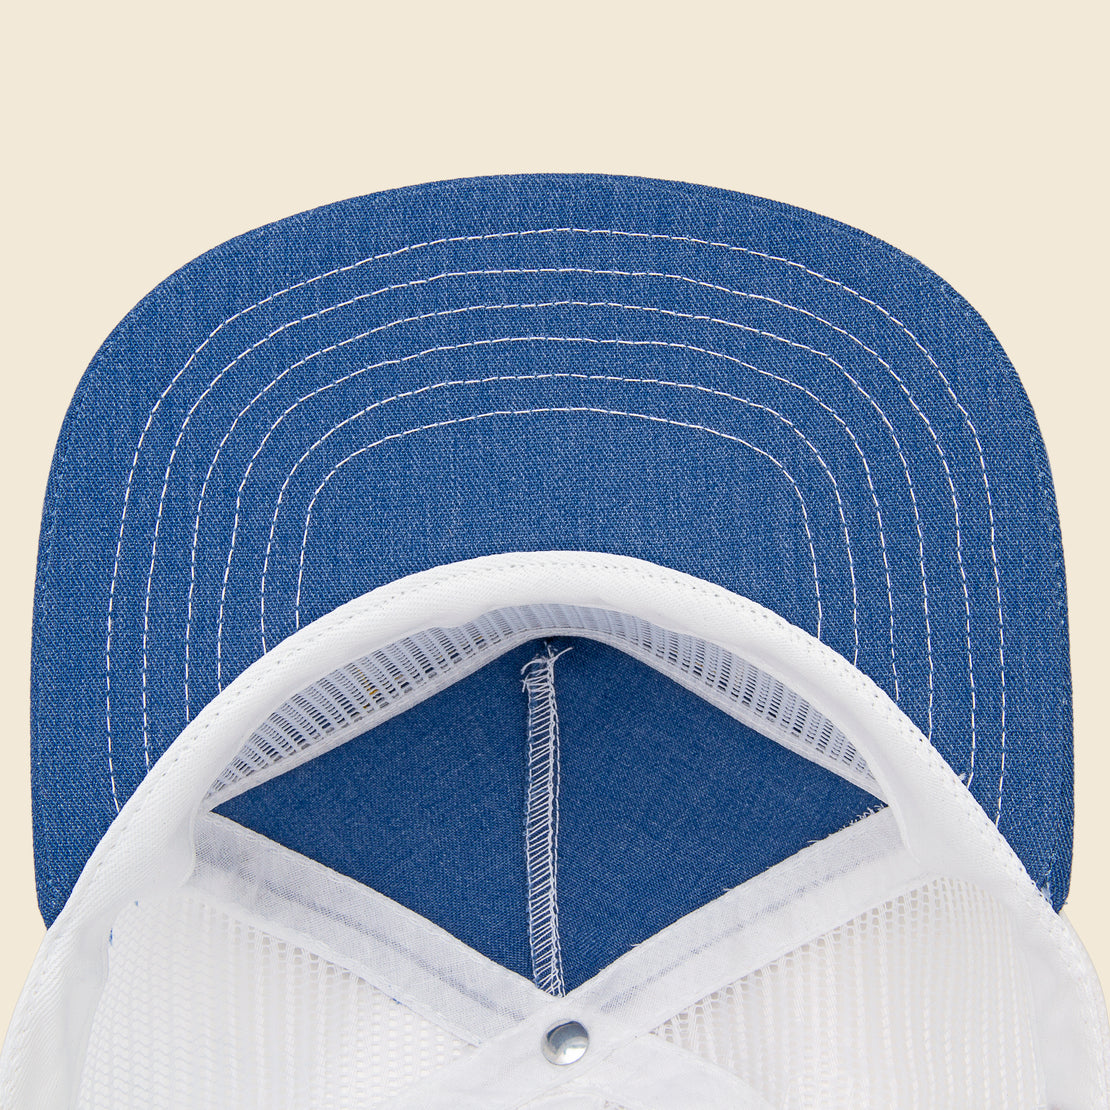 Club Cap - Denim/White